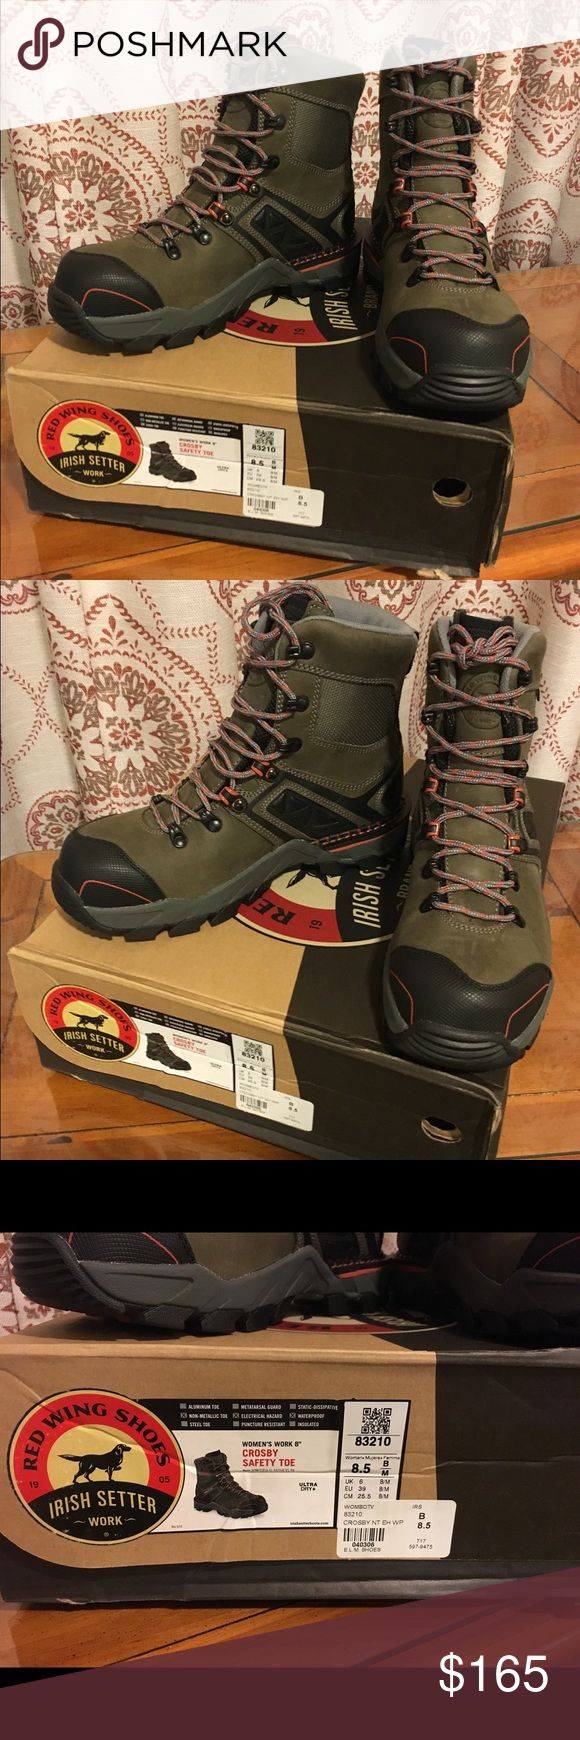 Red Wing Shoes Irish Setter Women's Safety toe work boots. Ultra Dry Waterproofing system;Electrical Hazard; Memory Foam insoles. Size 8.5 New with Tags and original box. Red Wing Shoes Shoes Combat & Moto Boots